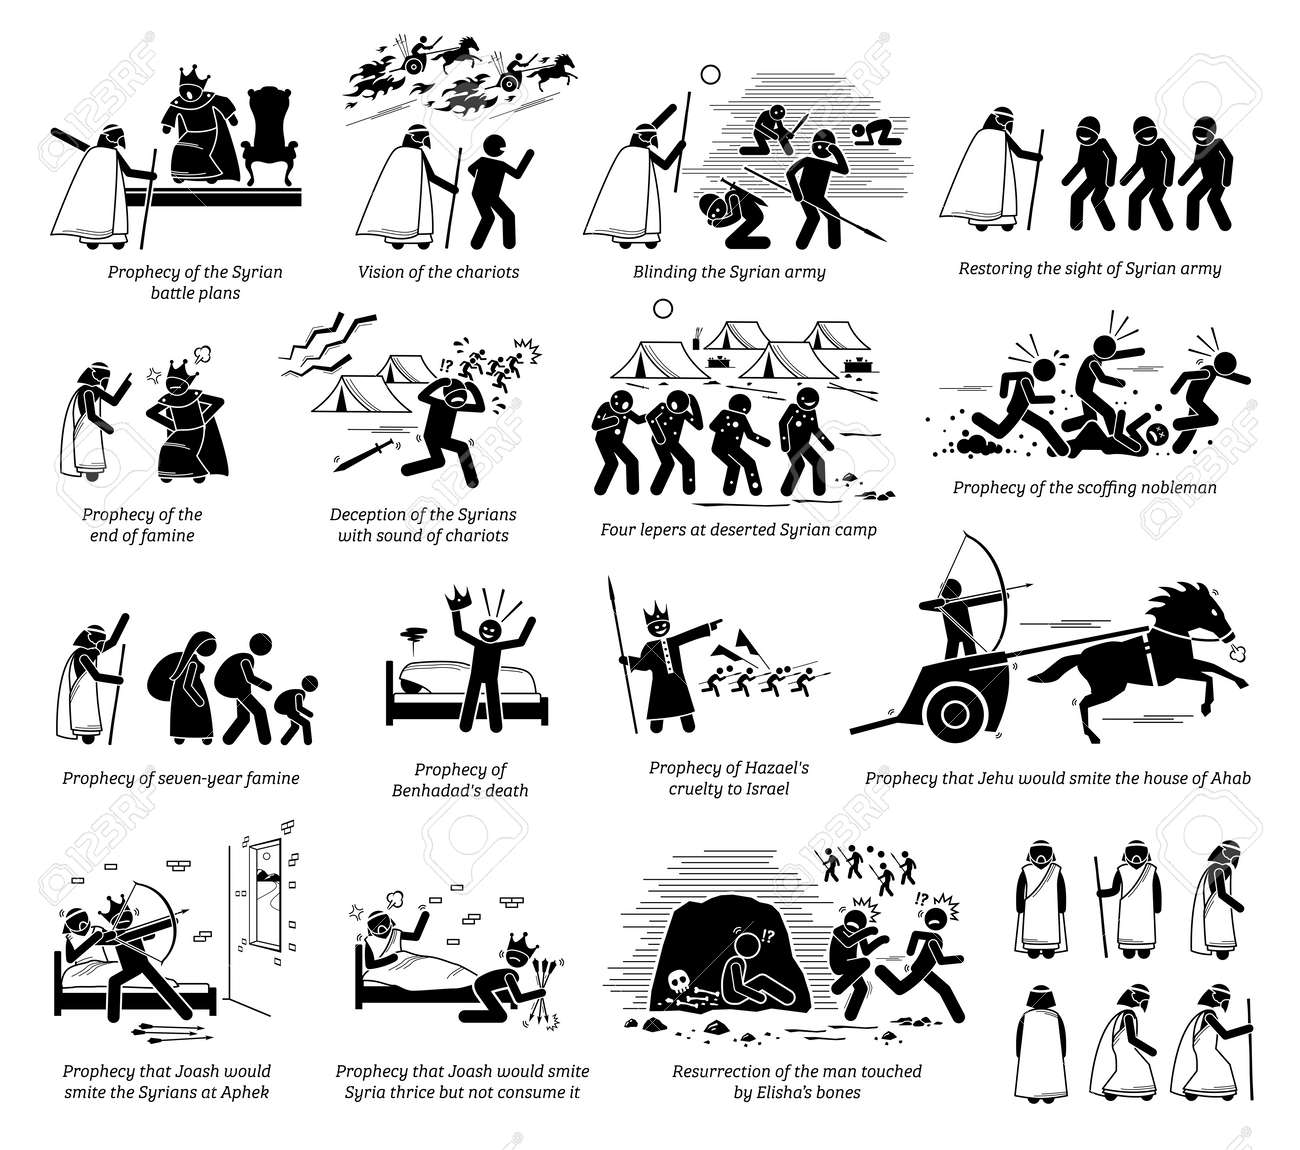 Miracles by prophet Elisha in Christian bible biblical God story from the Old Testament. Vector illustrations list of miracles done by prophet Elisha part 2 of 2. - 168900495